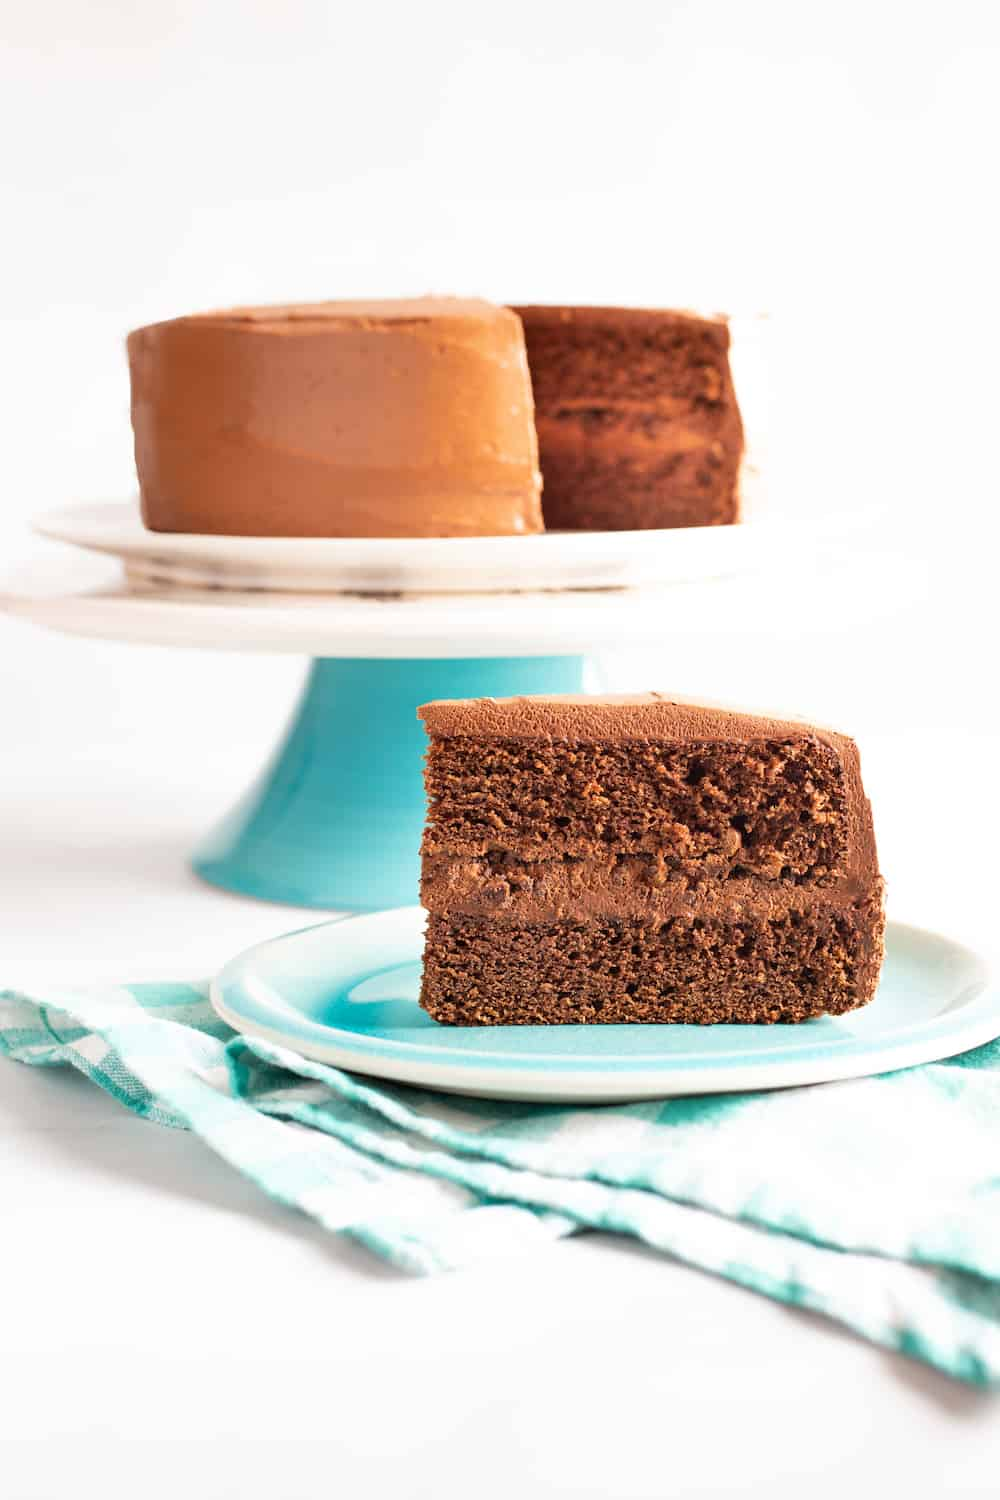 Why Try Rye Flour? For Chocolate Rye Cake!